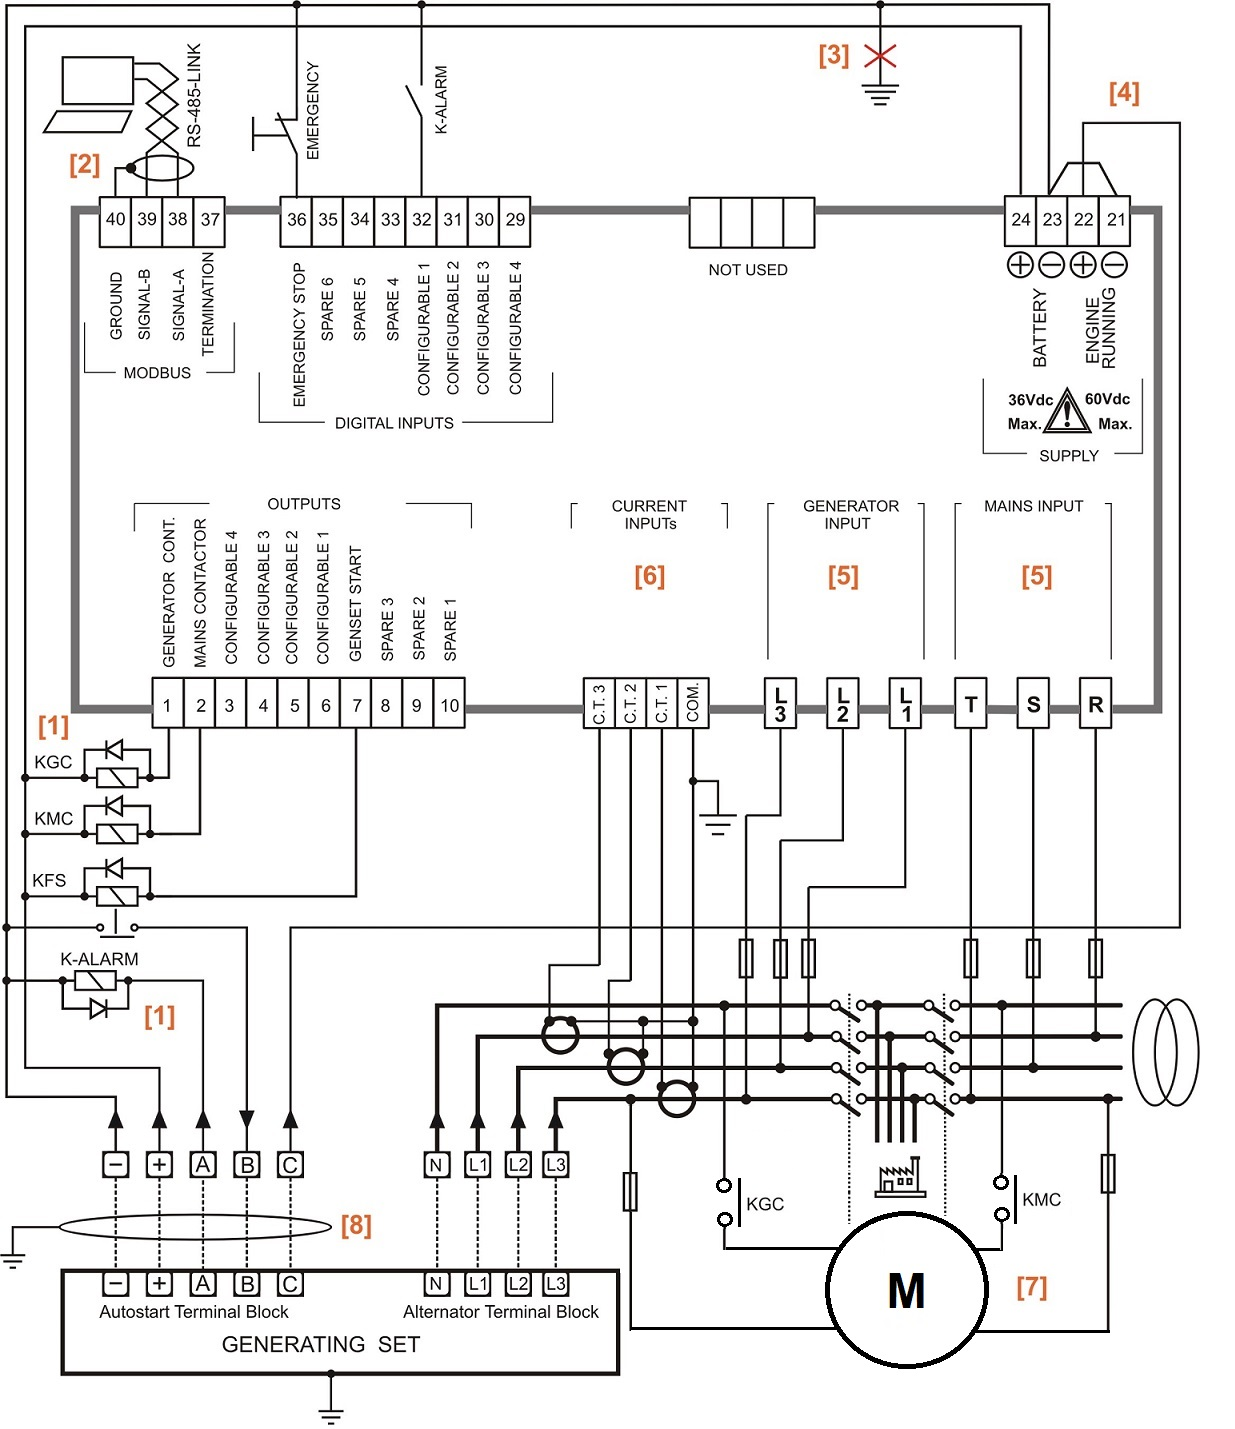 Diagram Kohler Automatic Transfer Switch Wiring Diagram